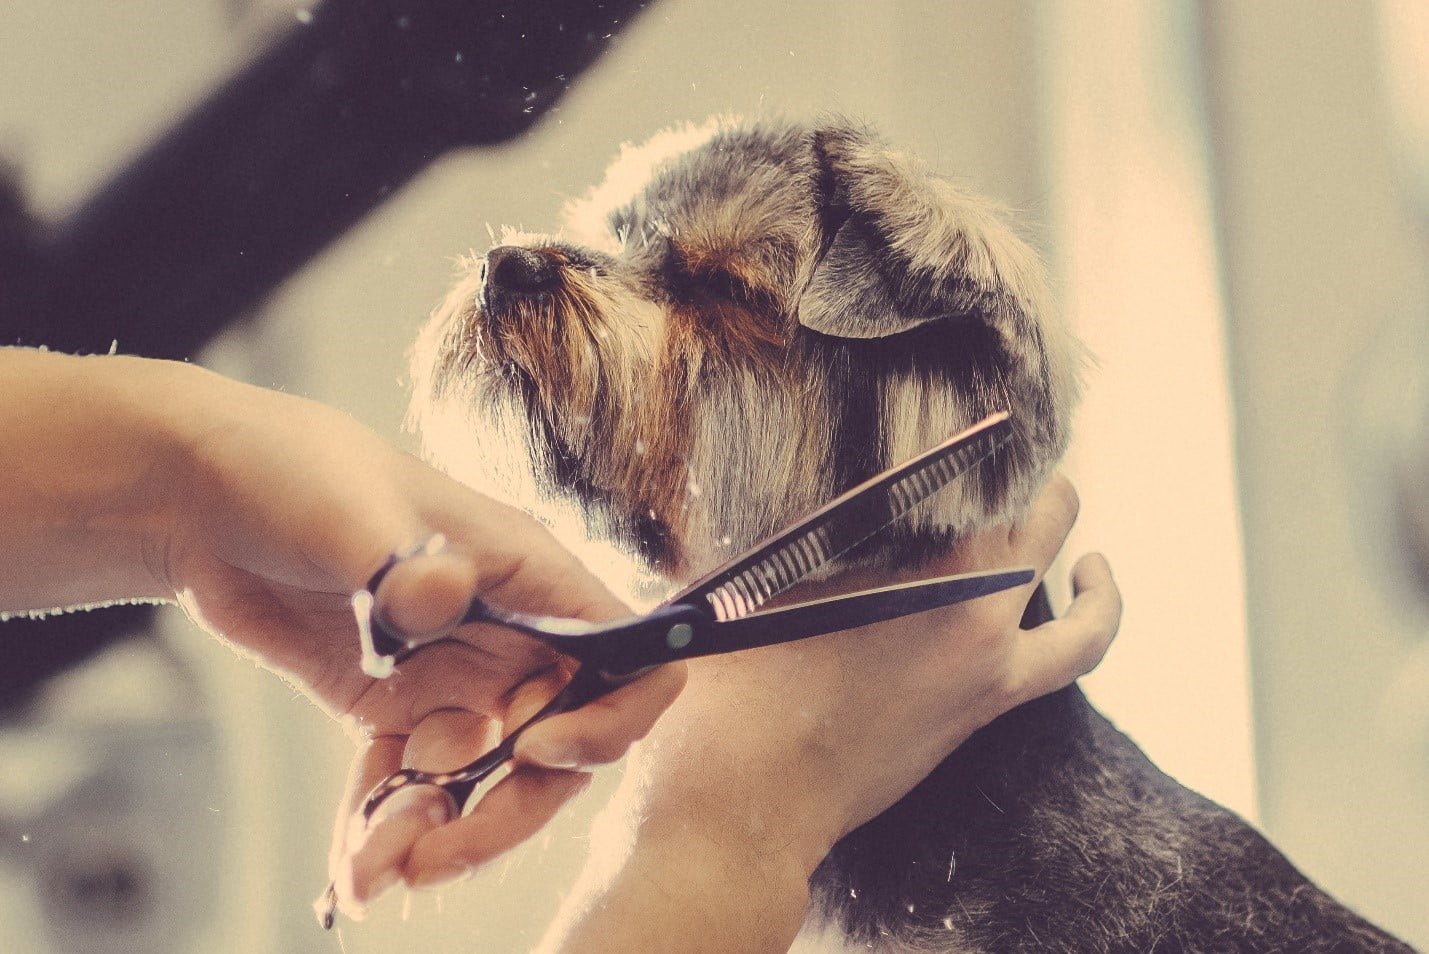 dog with eyes closes, being groomed, great cut